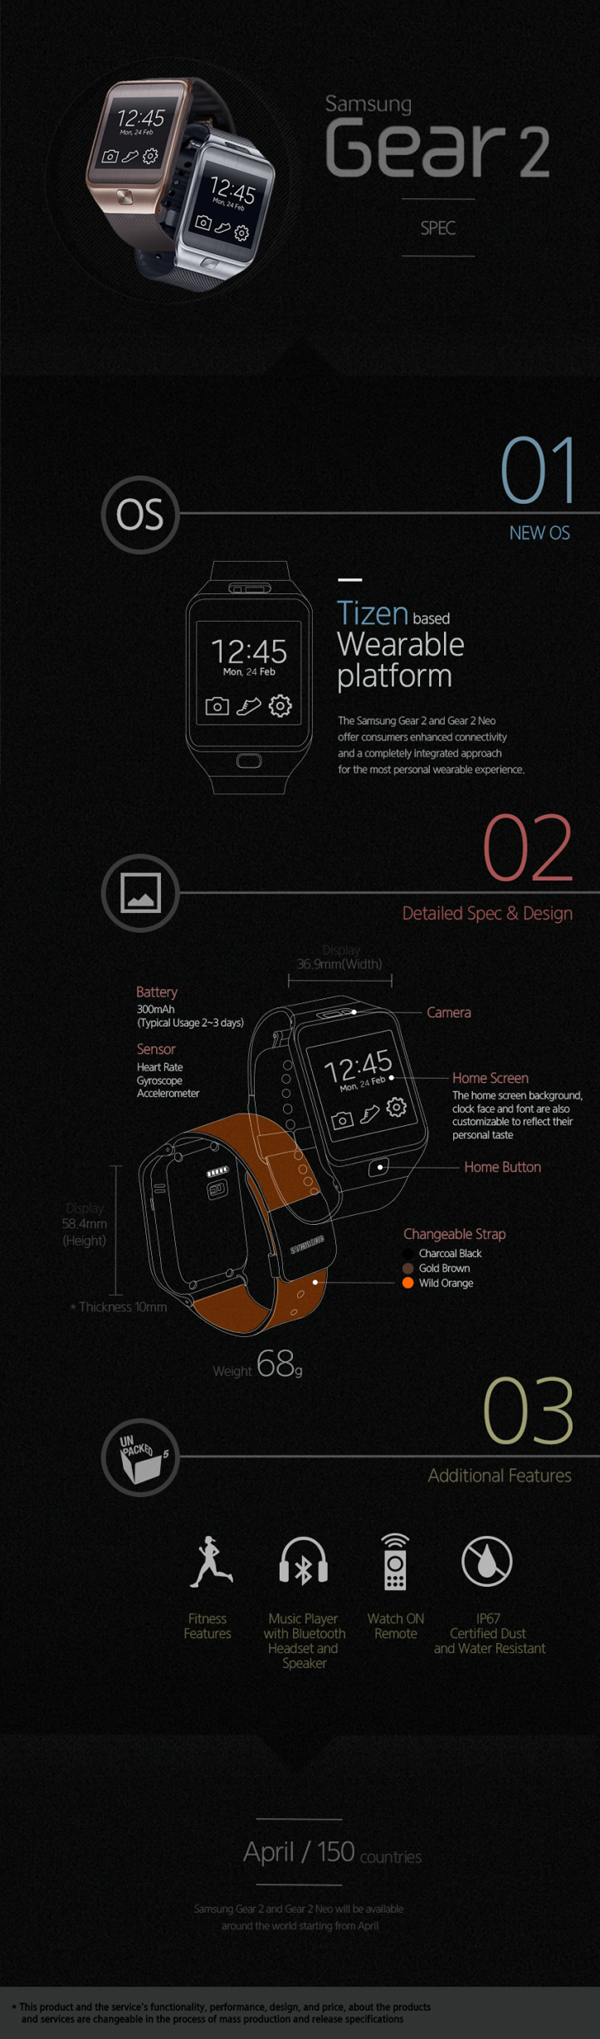 Samsung Galaxy Gear 2 infographic